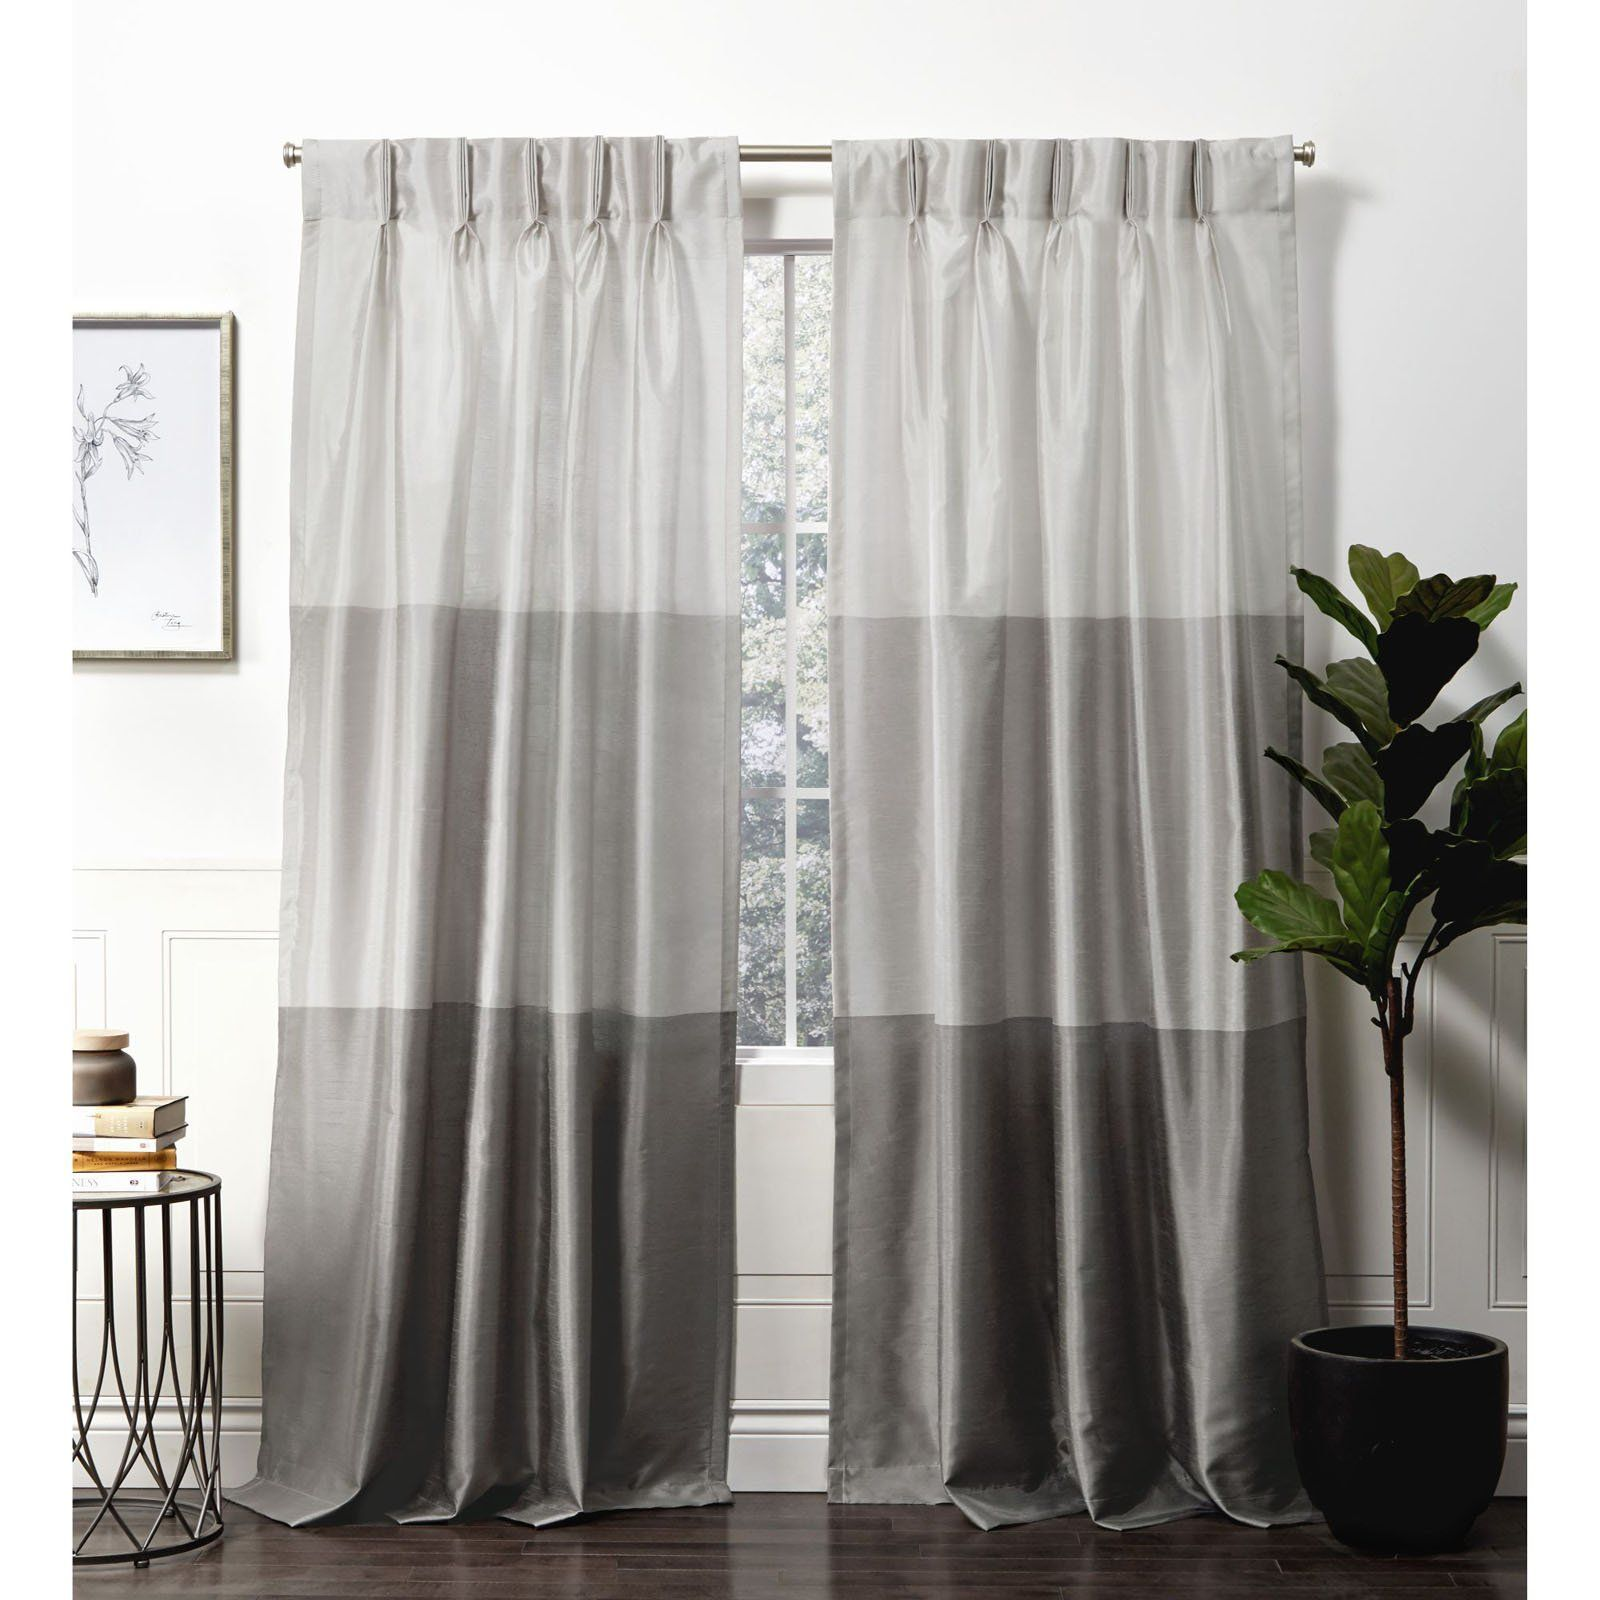 Exclusive Home Chateau Striped Faux Silk Pinch Pleat Curtain Panel Pair Teal Pleated Curtains Panel Curtains Pinch Pleat Curtains